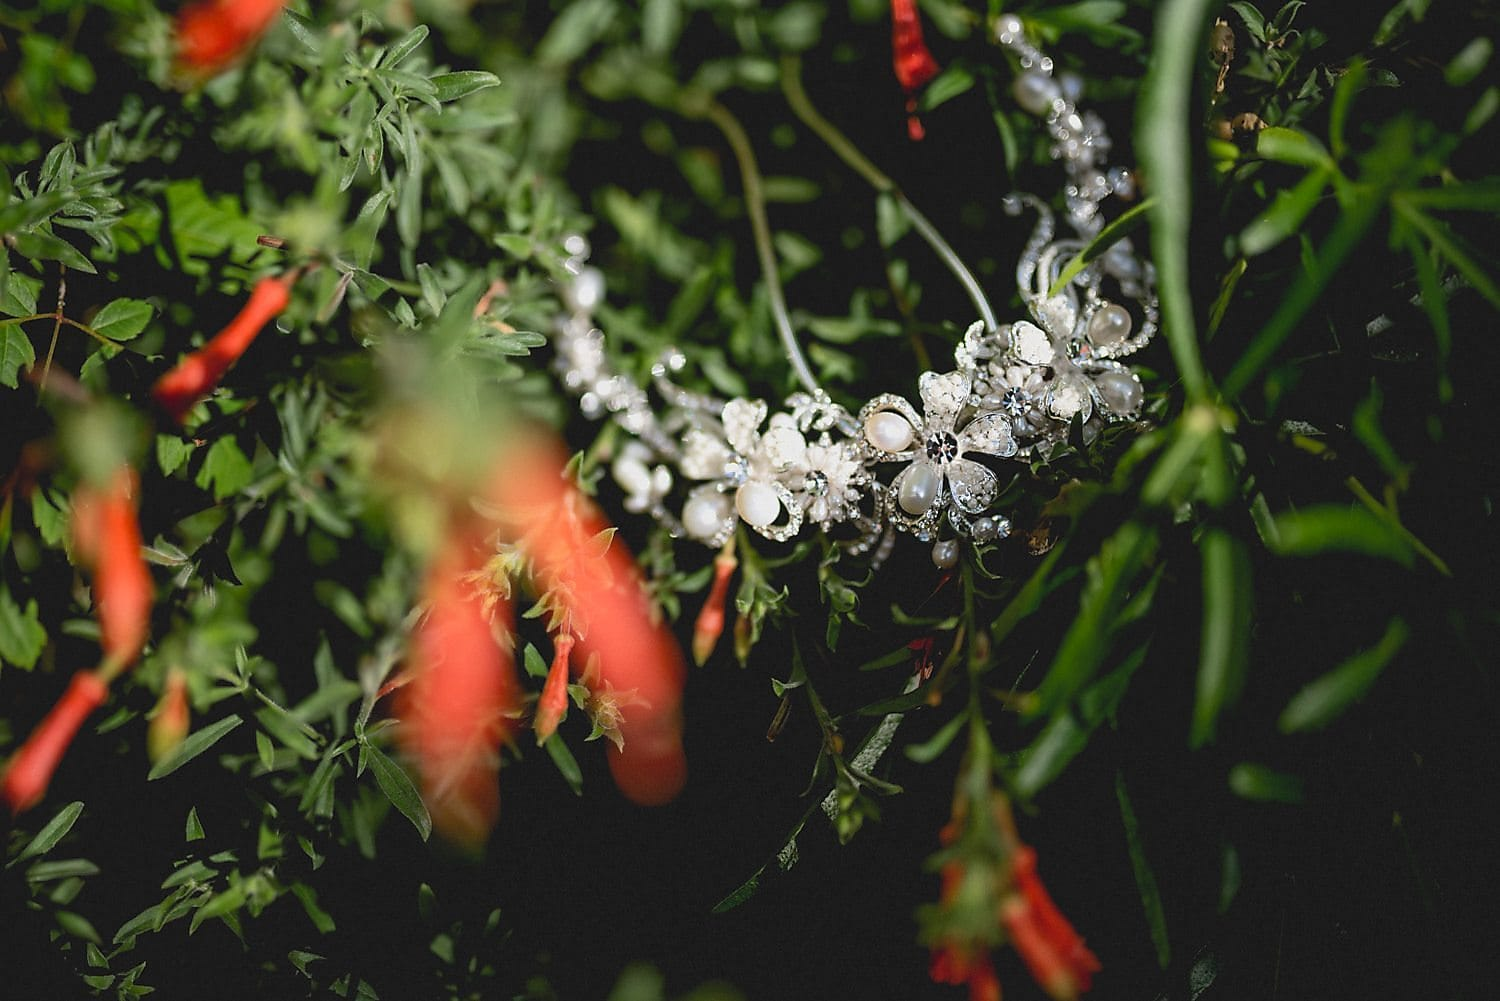 Bride's headpiece with pearls and beads is draped in the branches of a tree outside